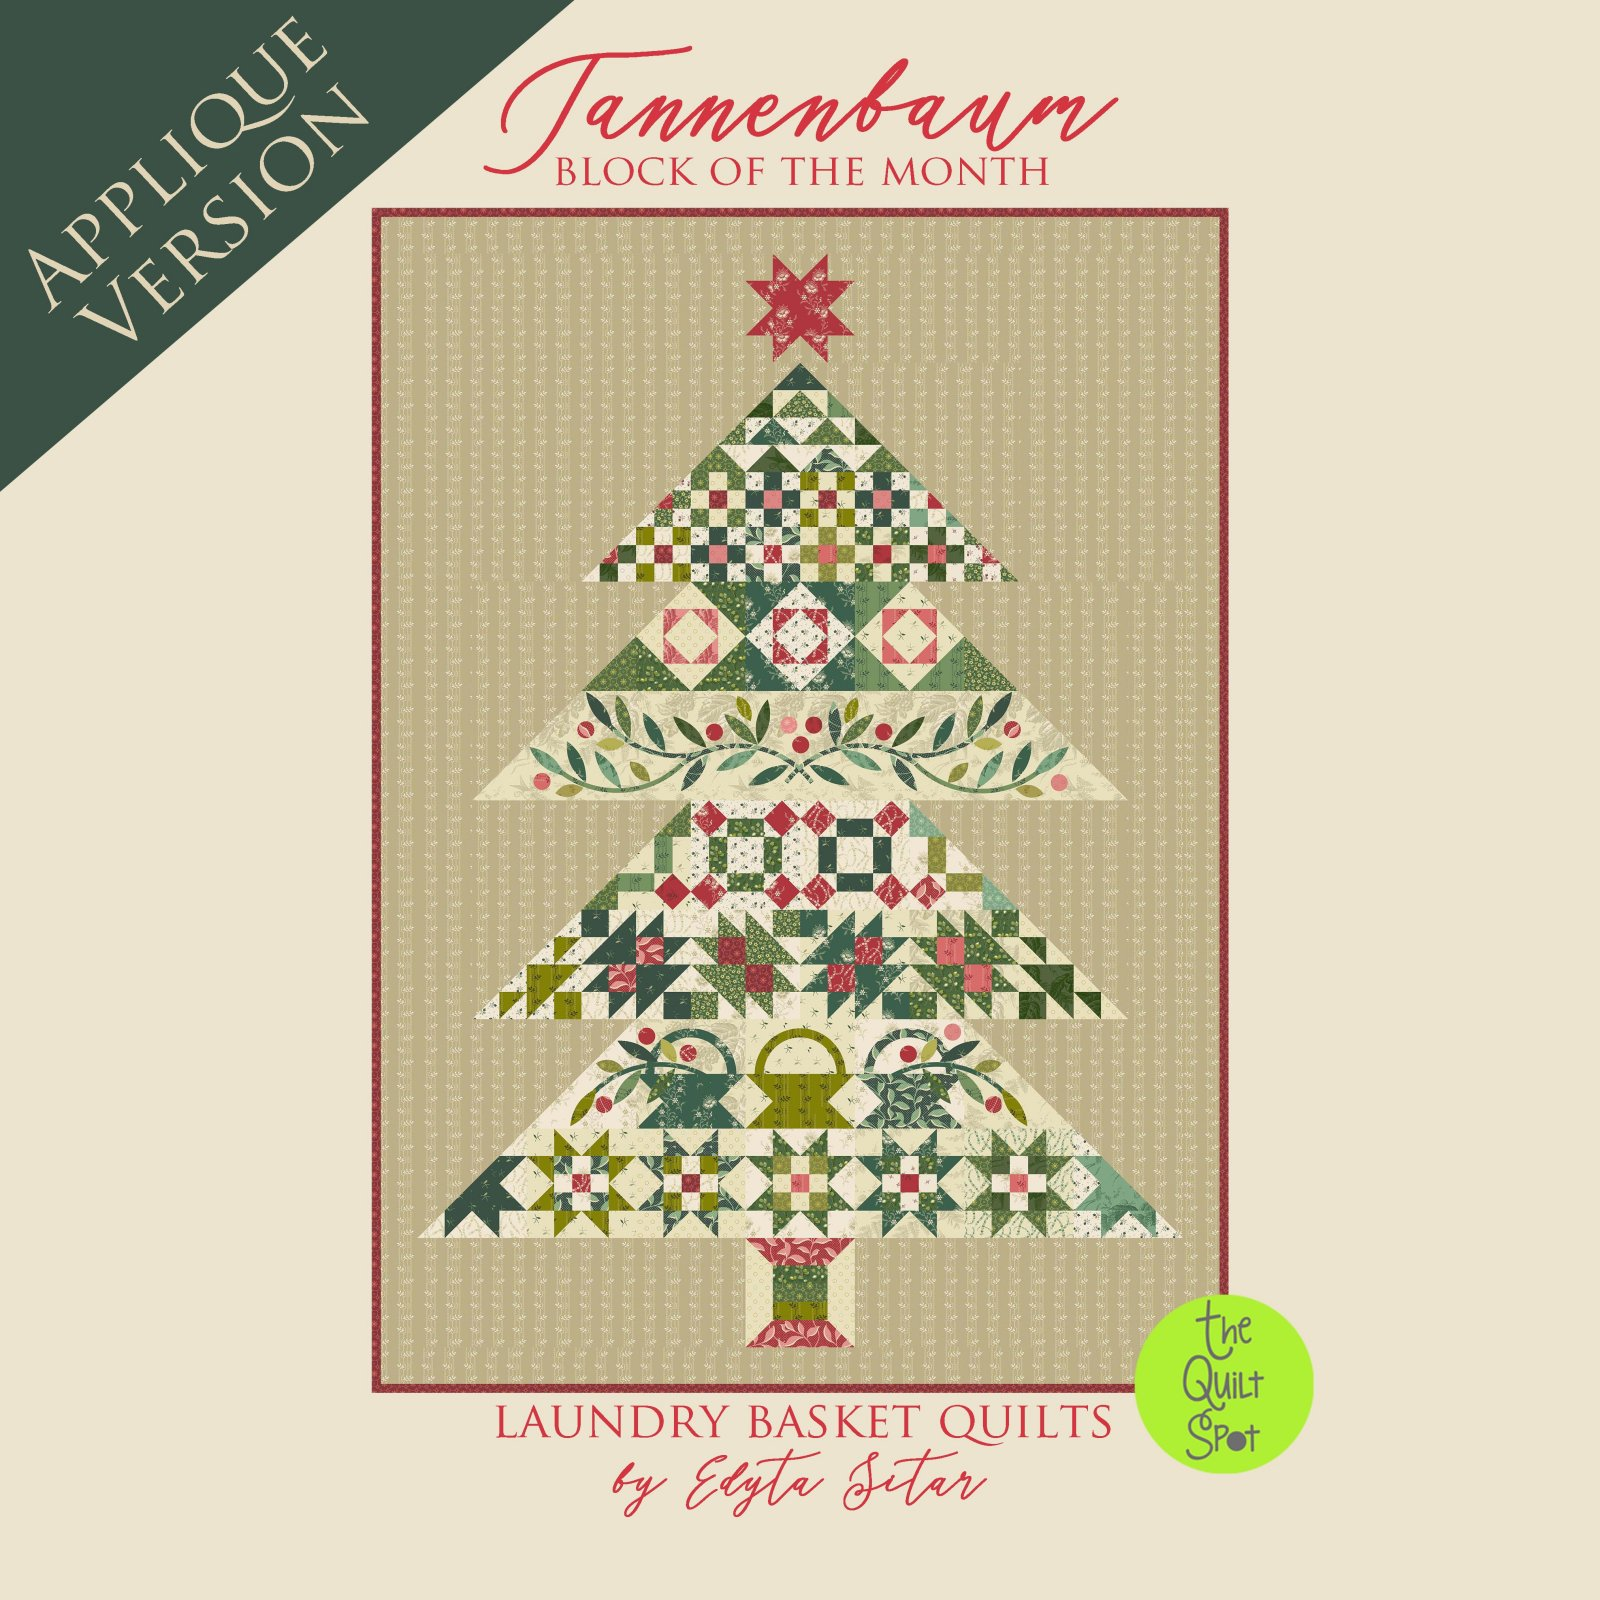 Tannenbaum Block of the Month by Laundry Basket Quilts Applique